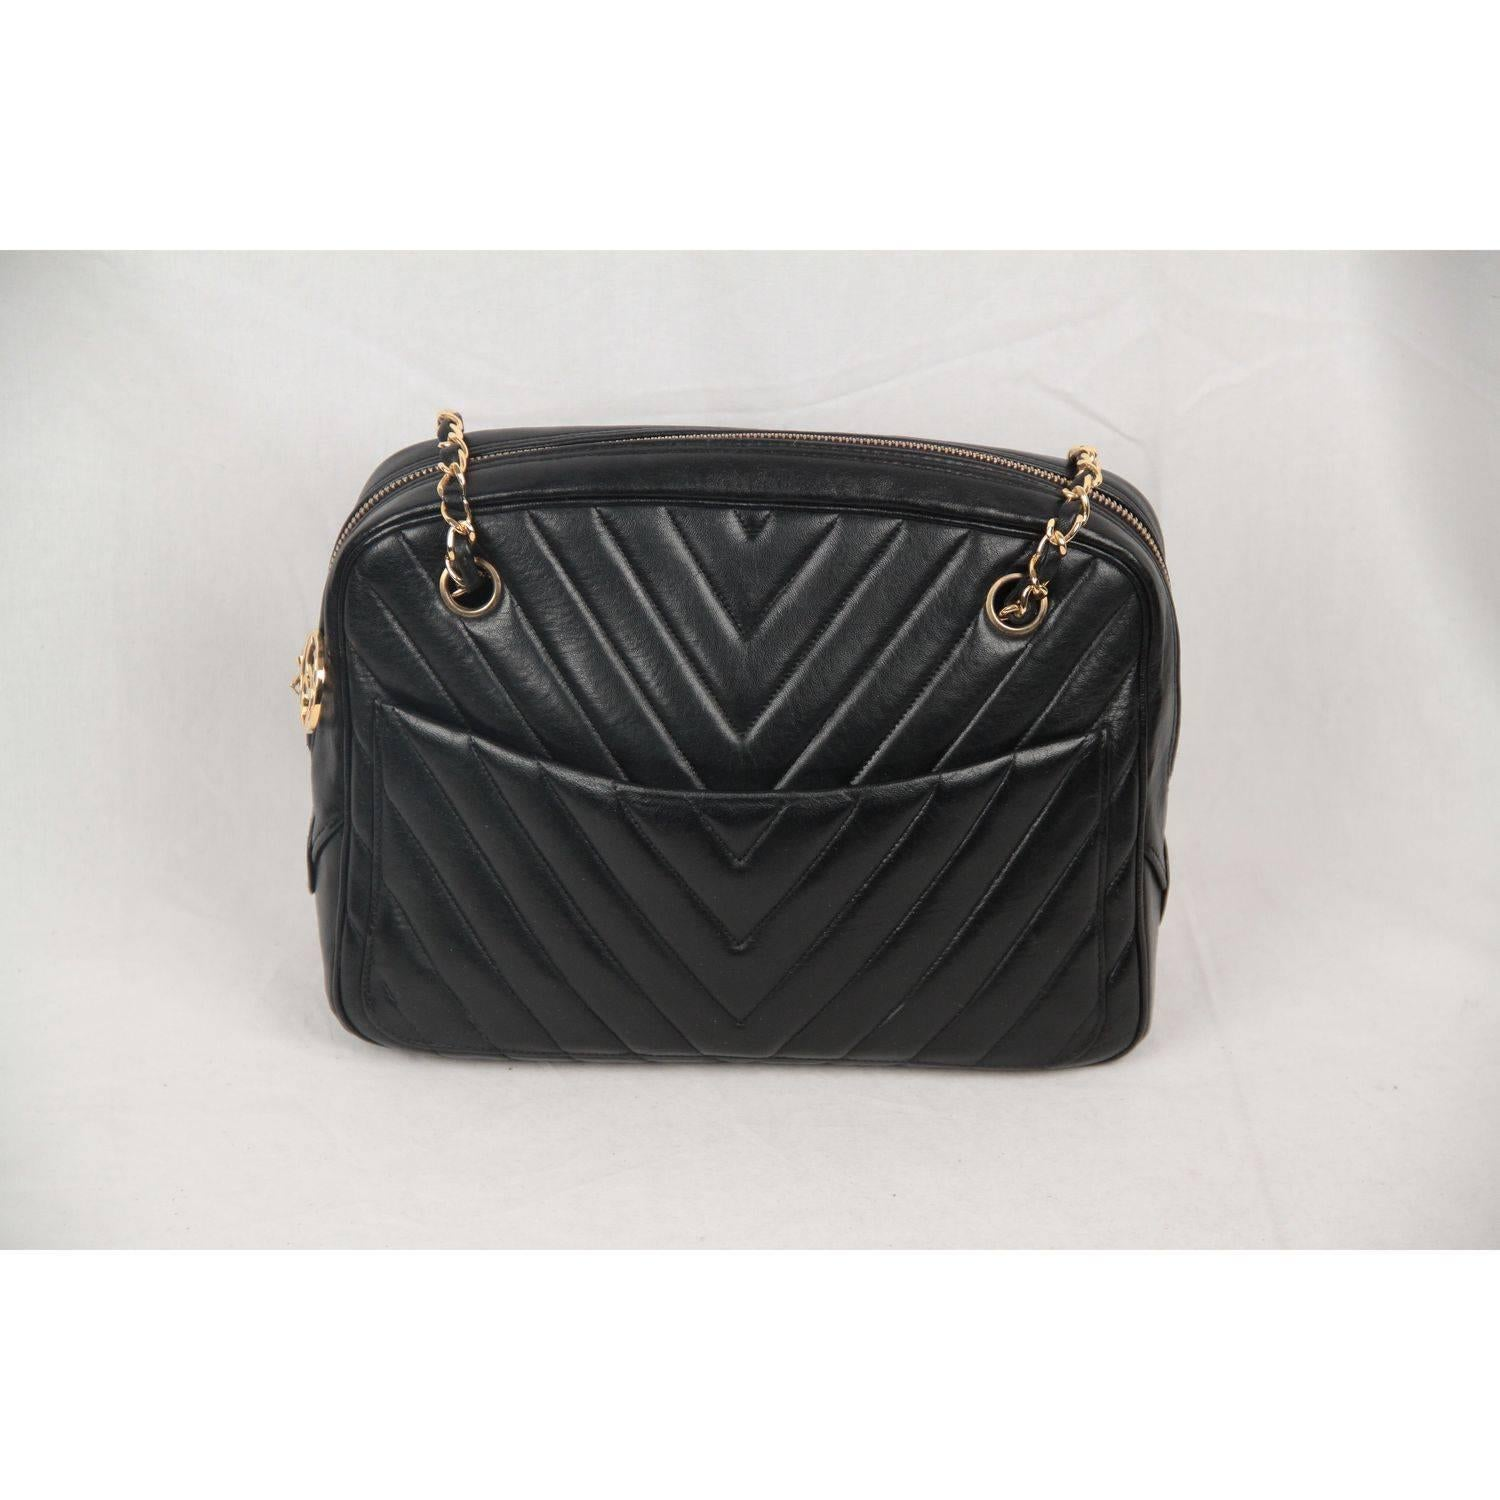 silver with hardware leather chunky metallic closure handbag quilted chain clasp kiss handbags and lock quilt marc jacobs gold product authentic